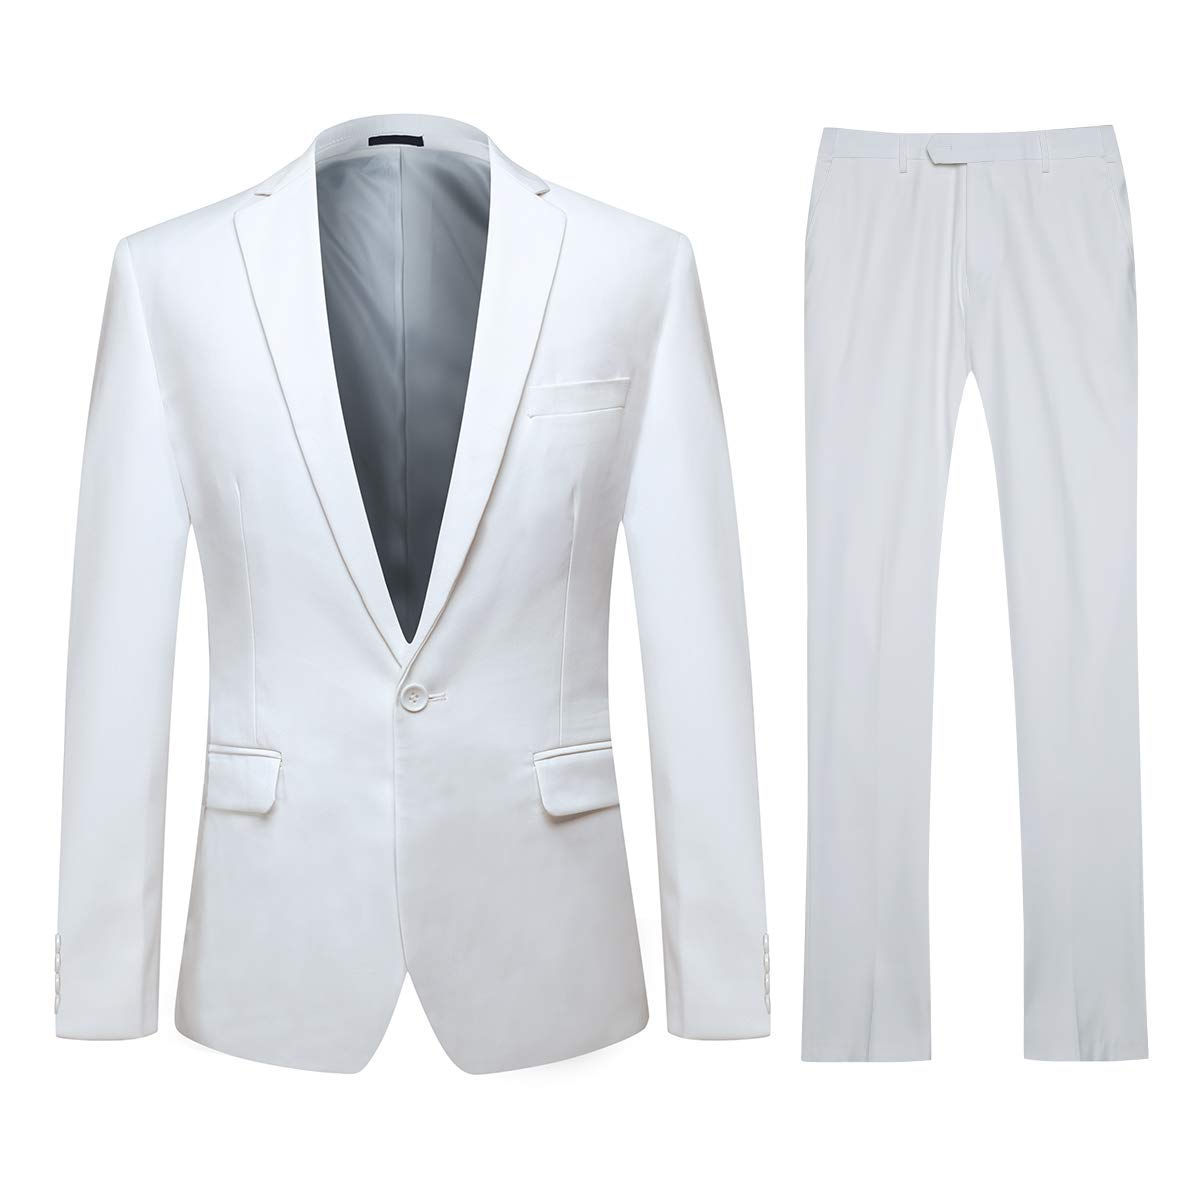 YFFUSHI Mens One Button Formal 2-piece Suits Tuxedo Multi-color Slim Fit, White, Small by YFFUSHI